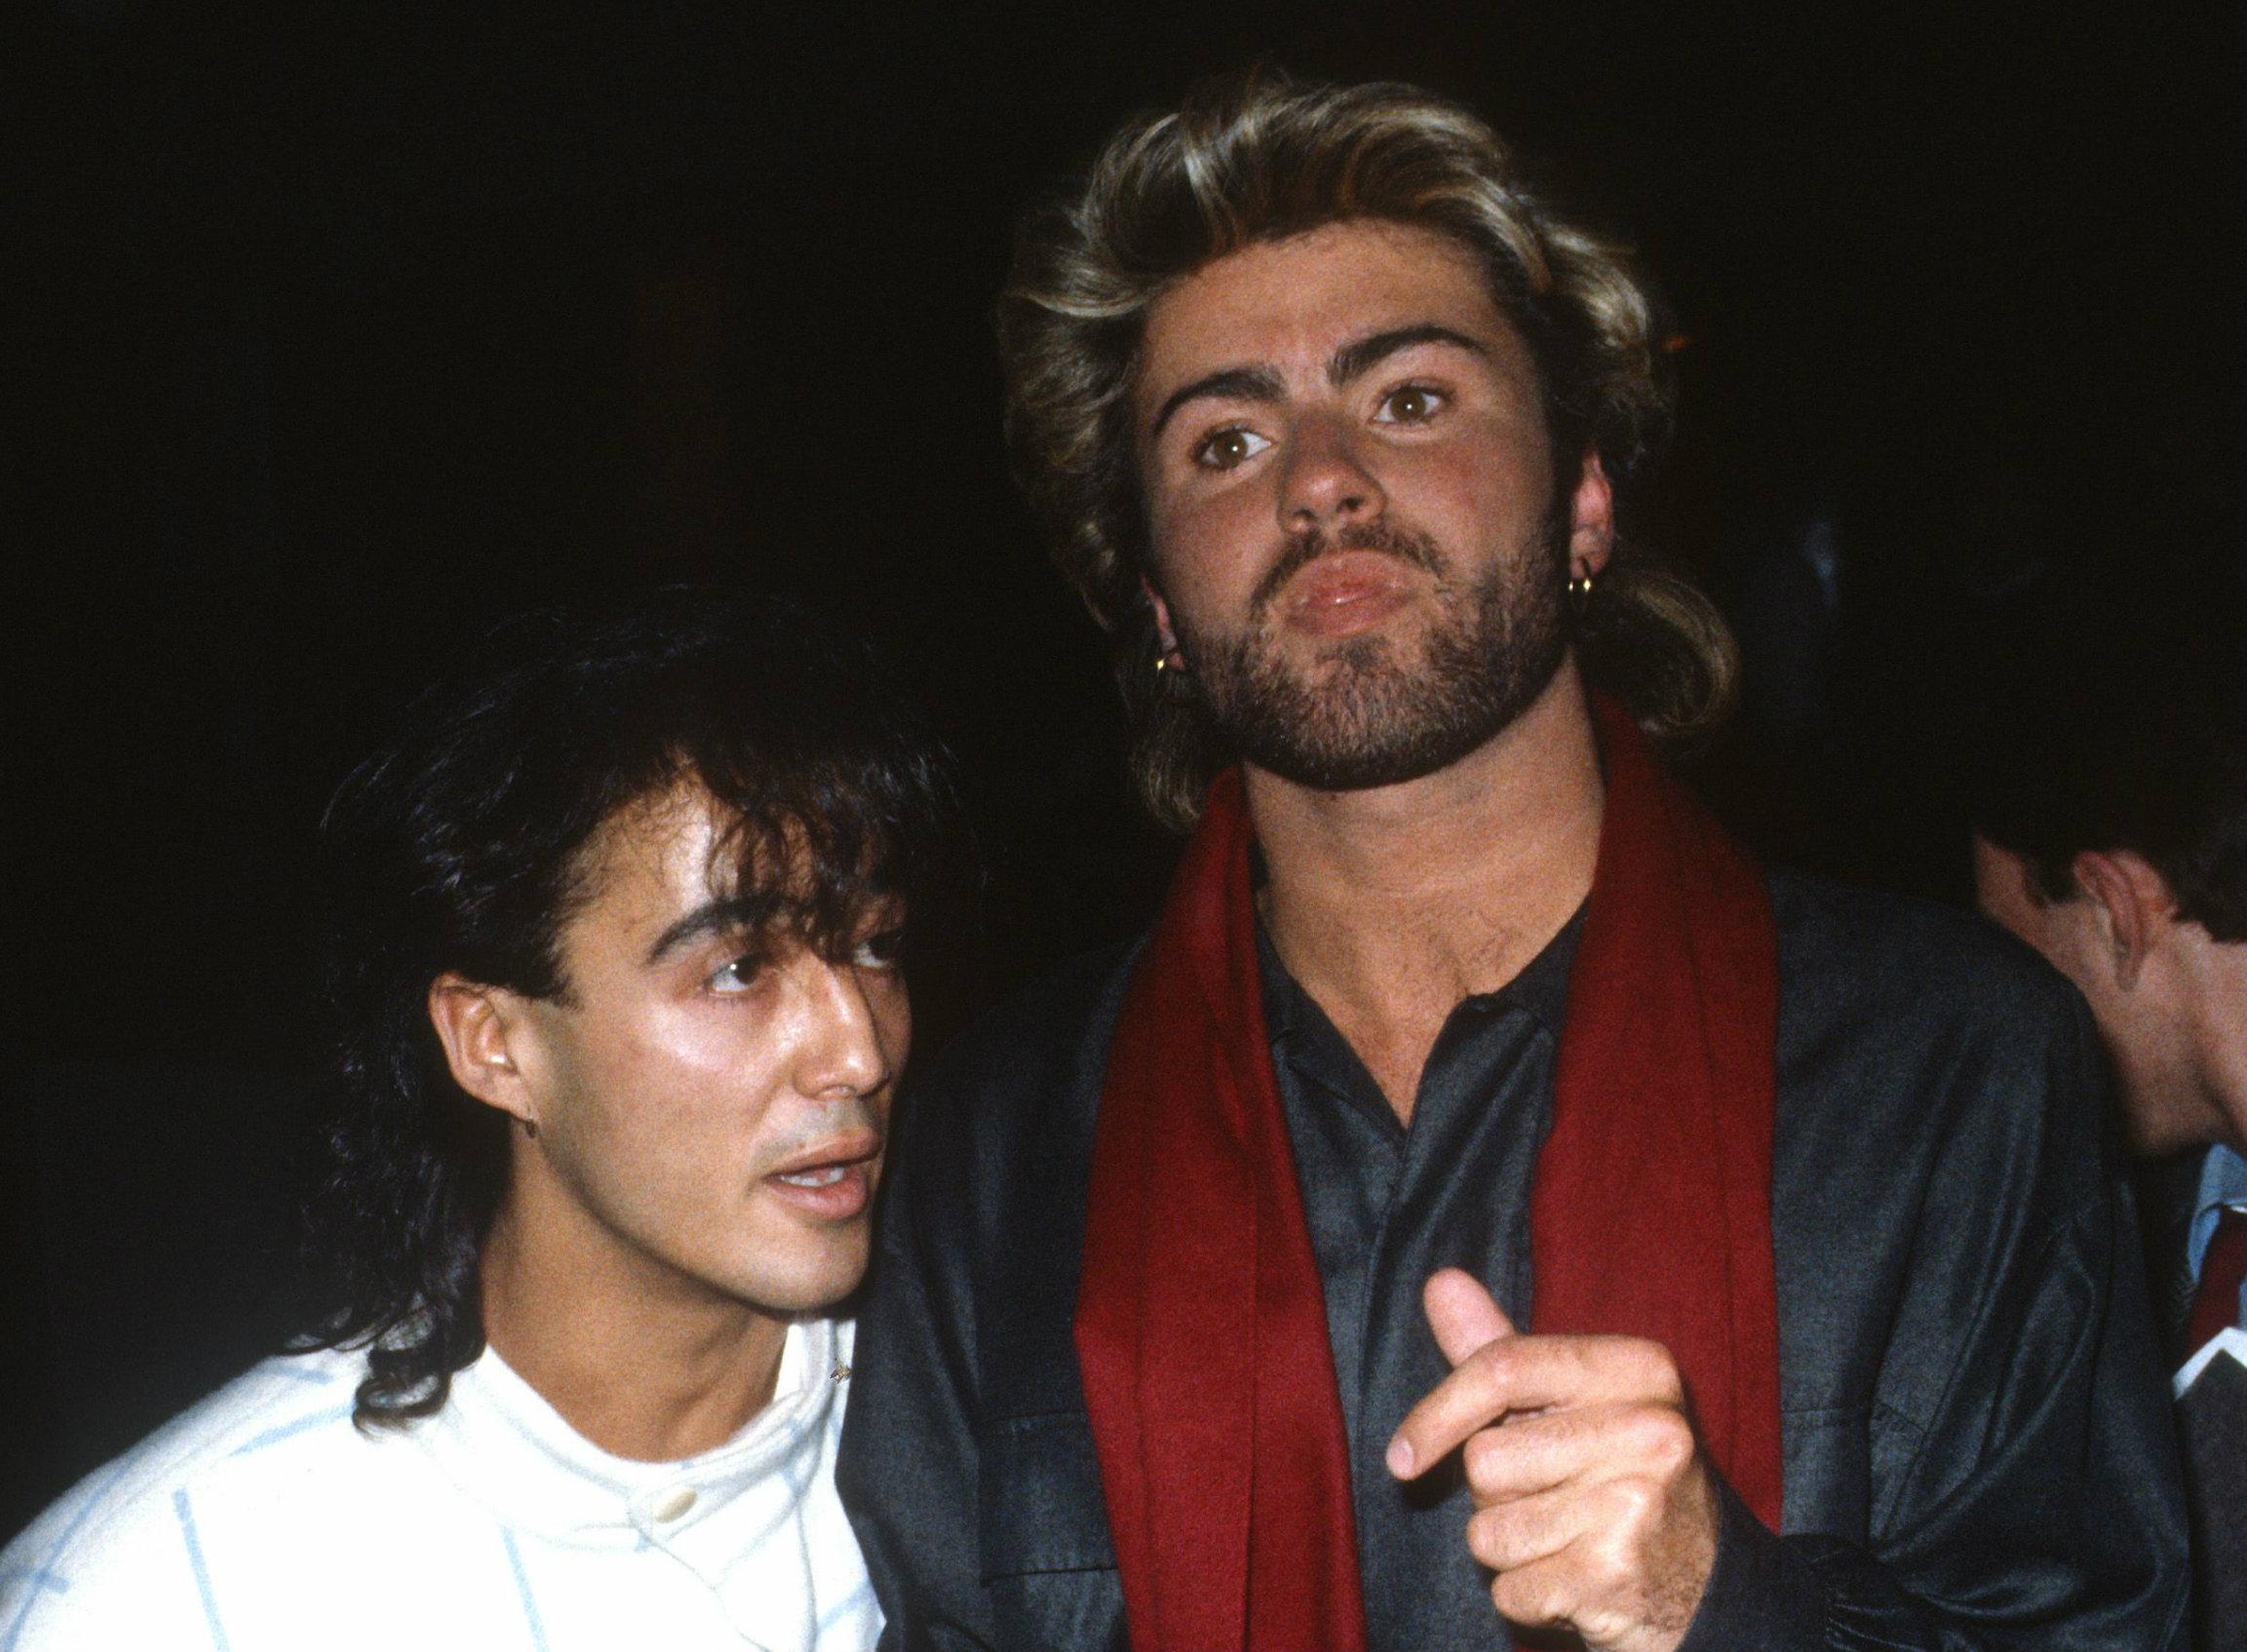 George Michael held special concert for NHS nurses after his mother ...